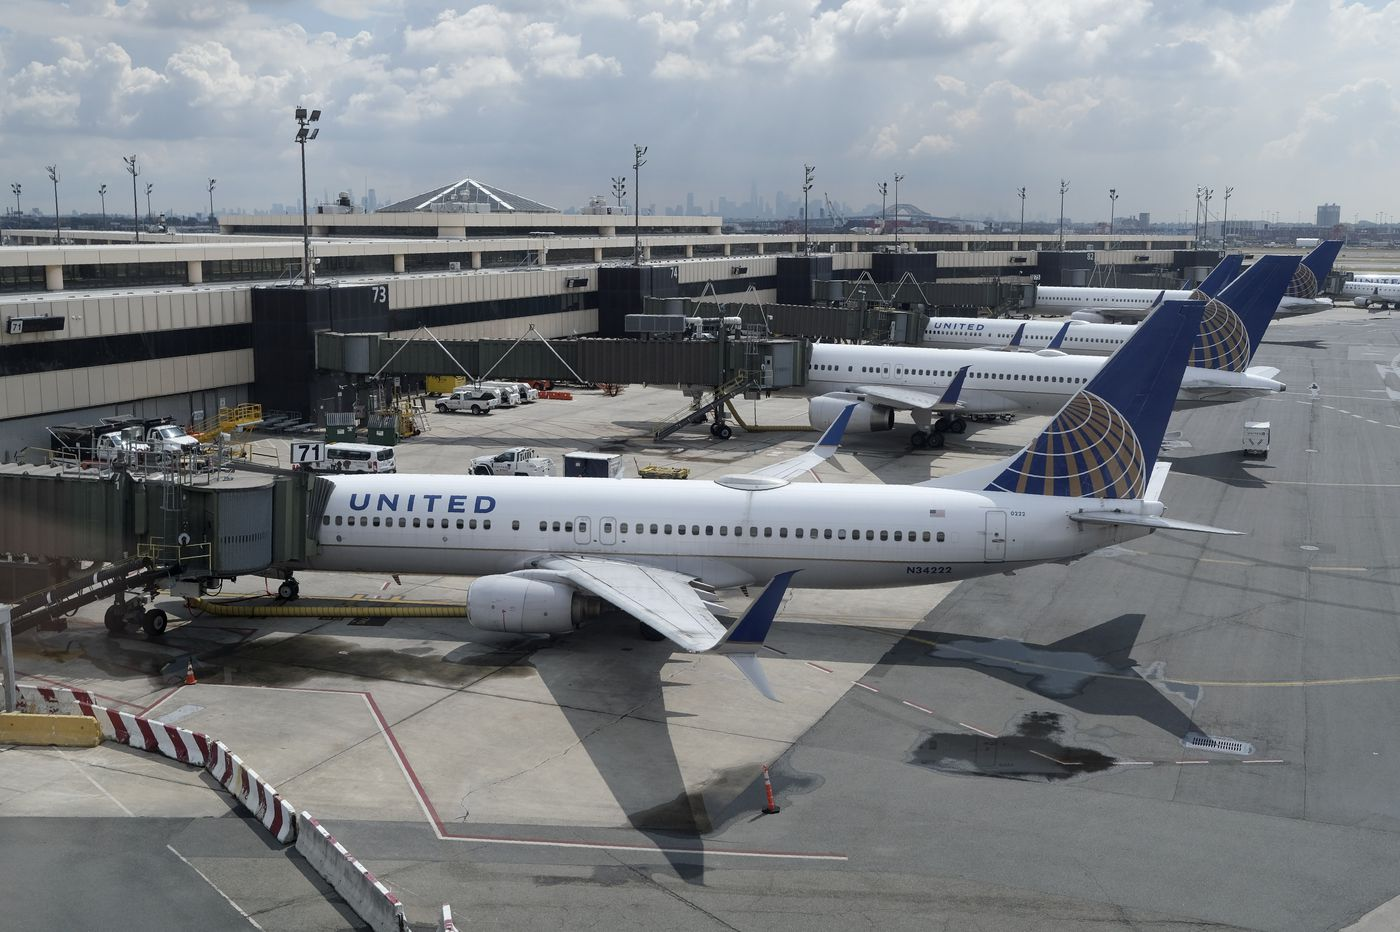 United Airlines to offer free coronavirus testing on select Newark-to-London flights